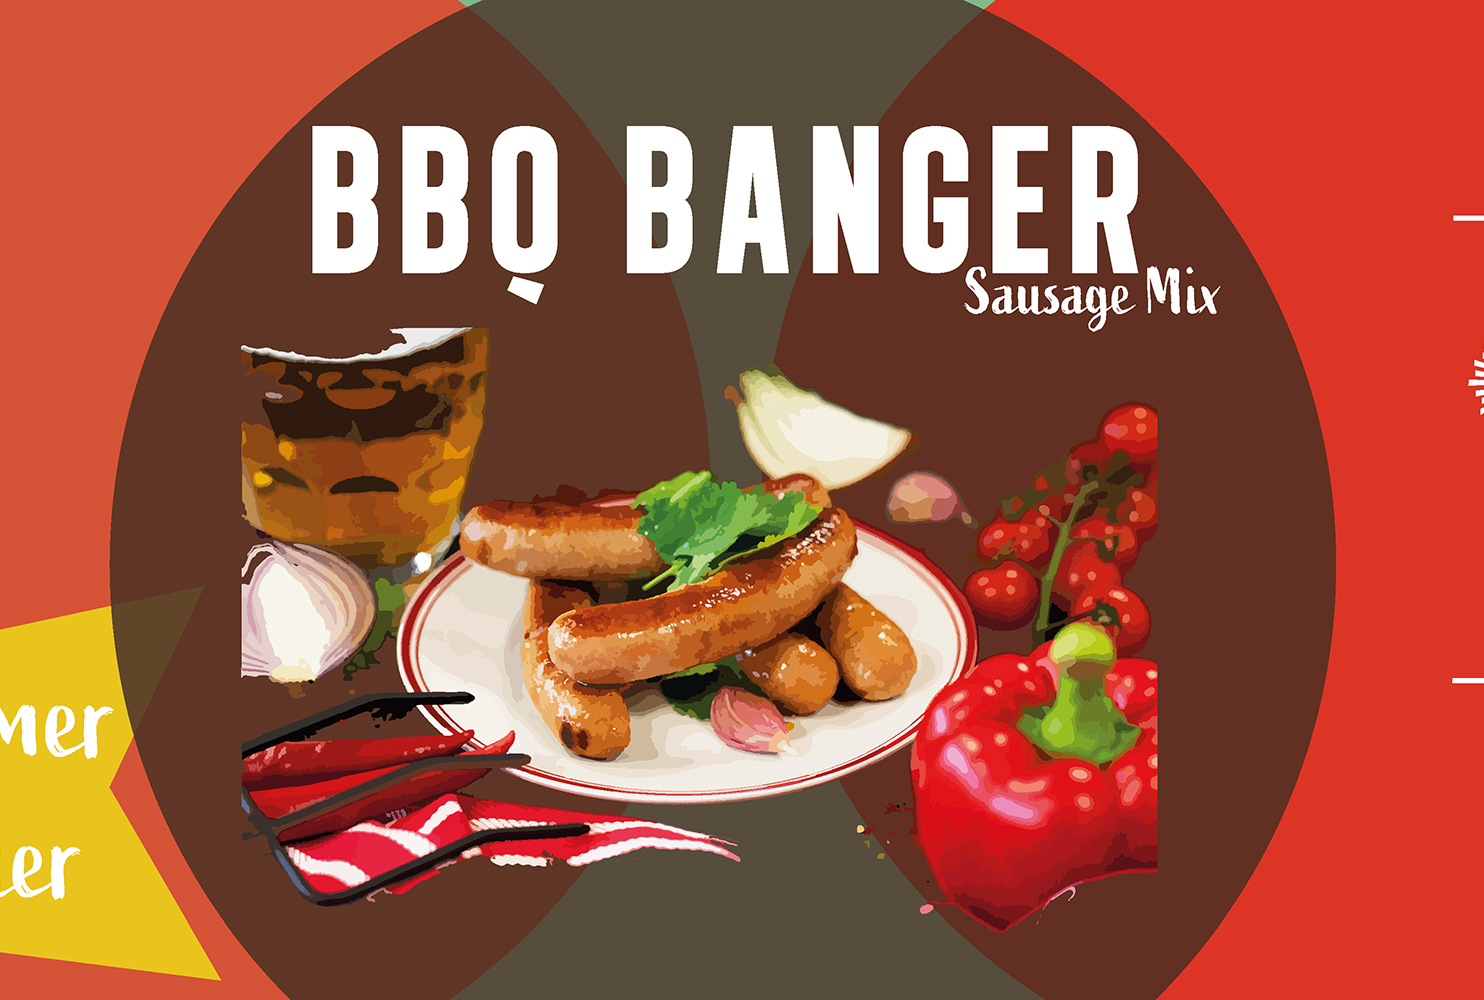 COUNTRY FAYRE BBQ BANGER SAUSAGE MIX